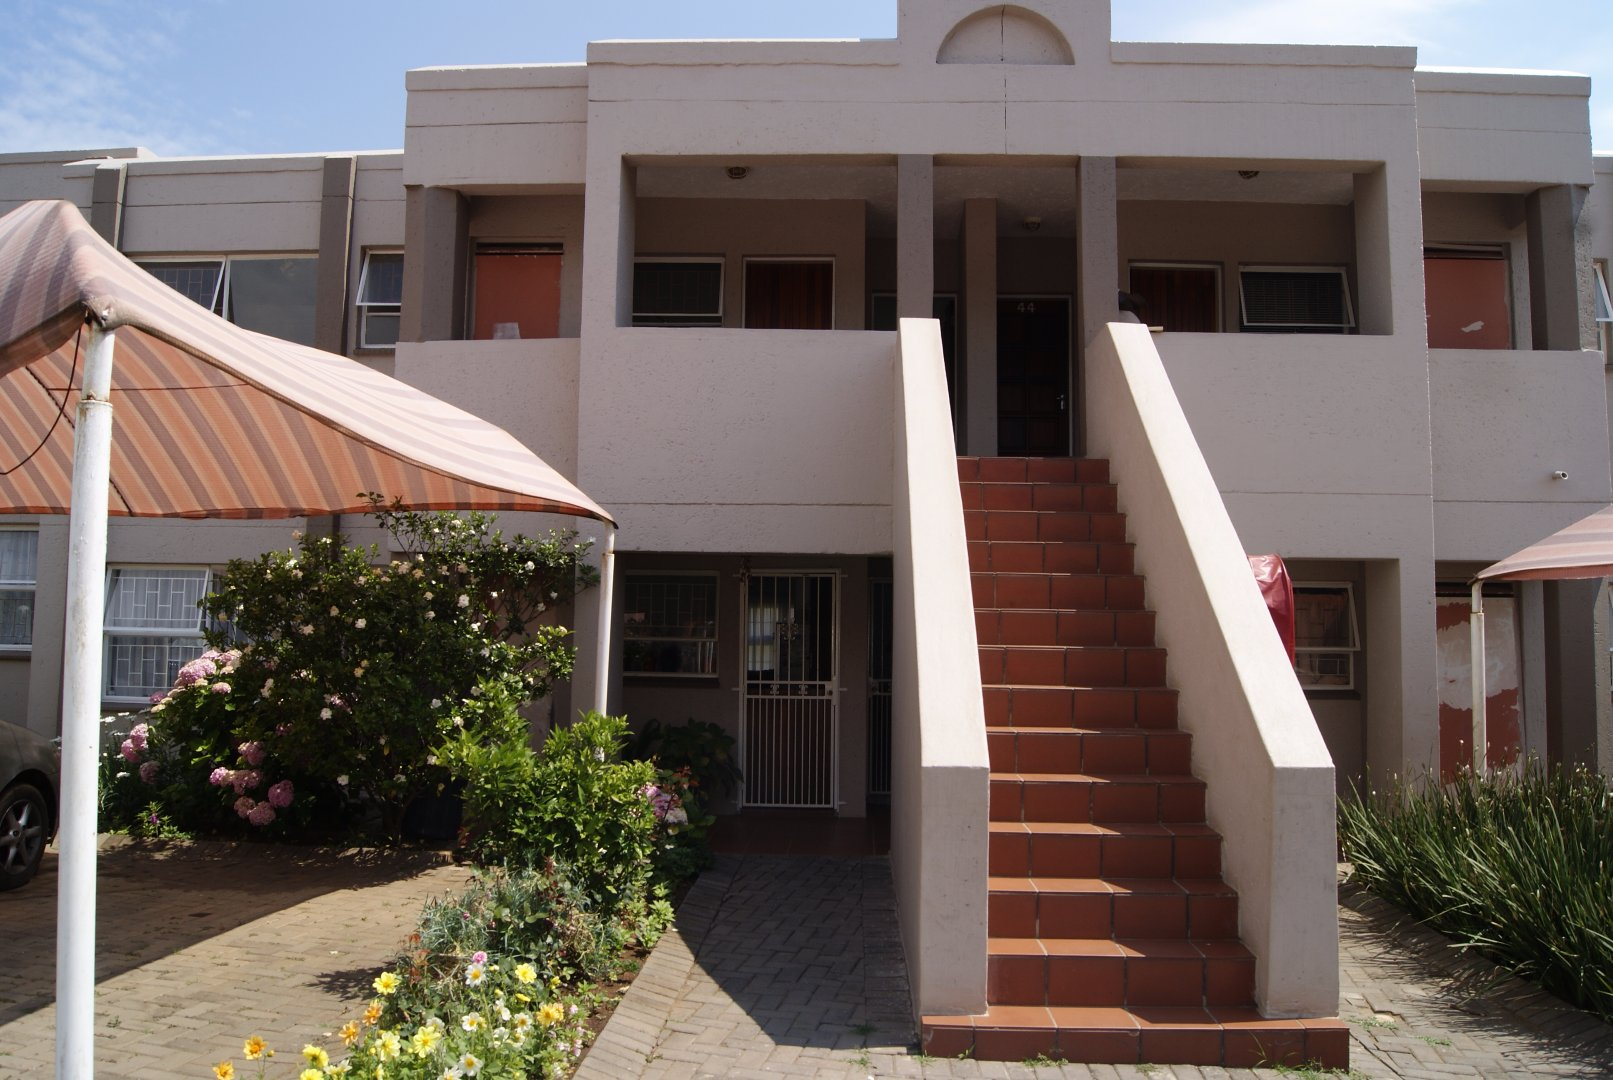 Johannesburg, Glenanda Property  | Houses For Sale Glenanda, Glenanda, Townhouse 2 bedrooms property for sale Price:755,000